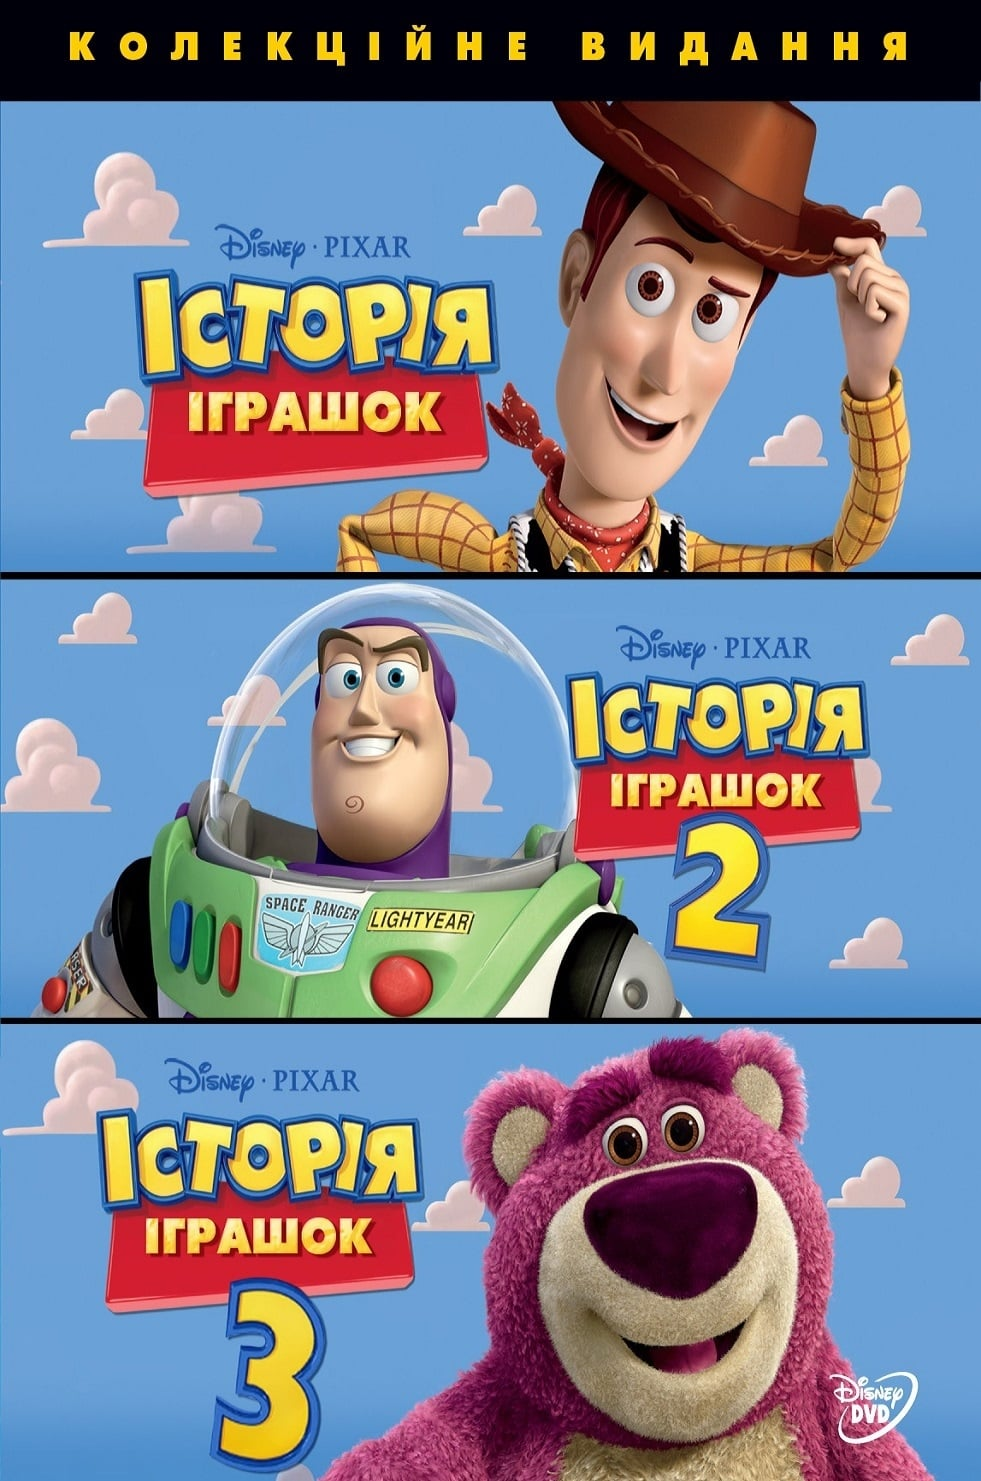 Toy Story Toys In Movie All Movies From Toy Story Collection Saga Are On Movies